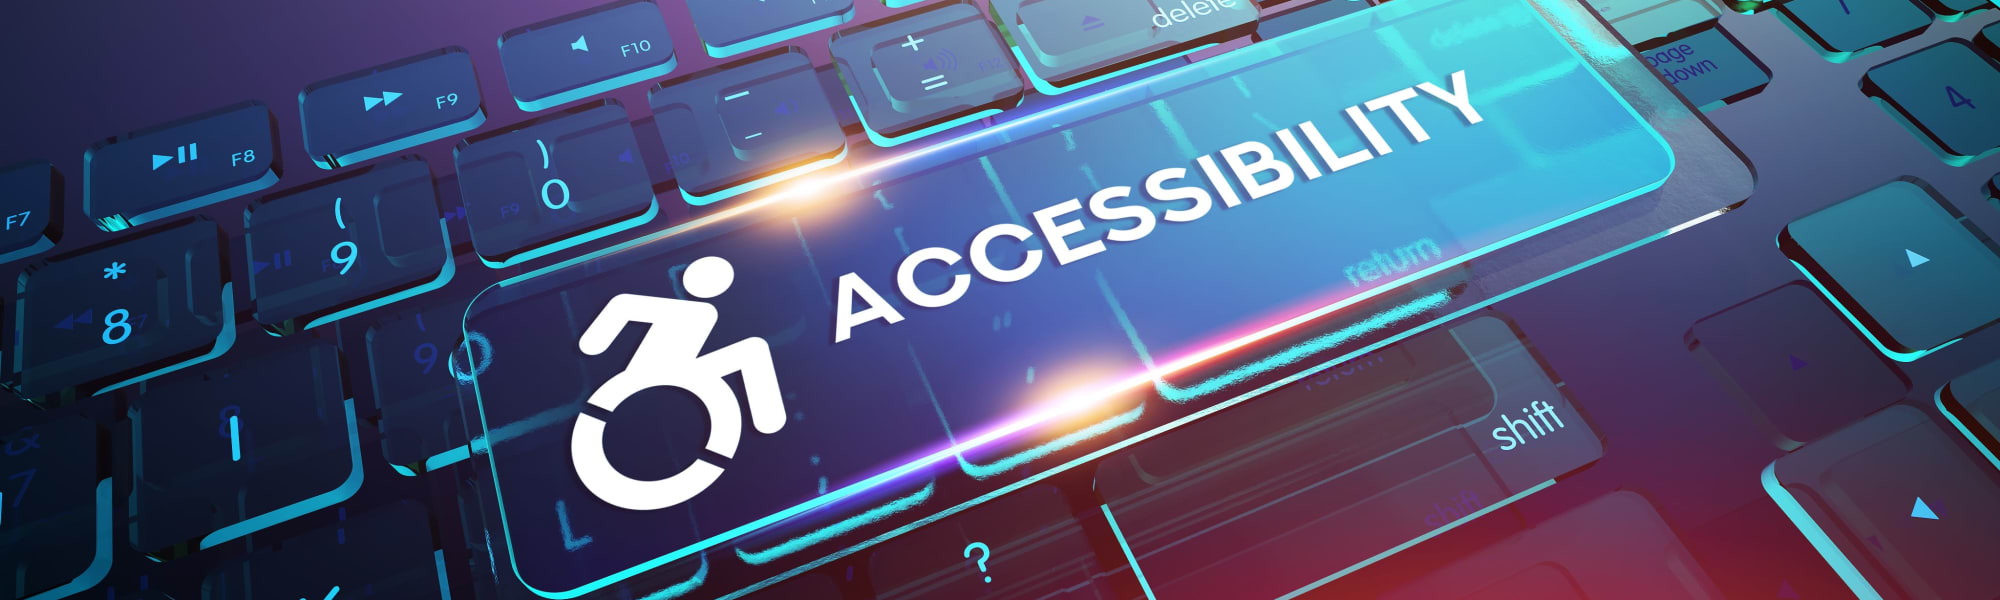 Accessibility policy for Olympus Hillwood in Murfreesboro, Tennessee